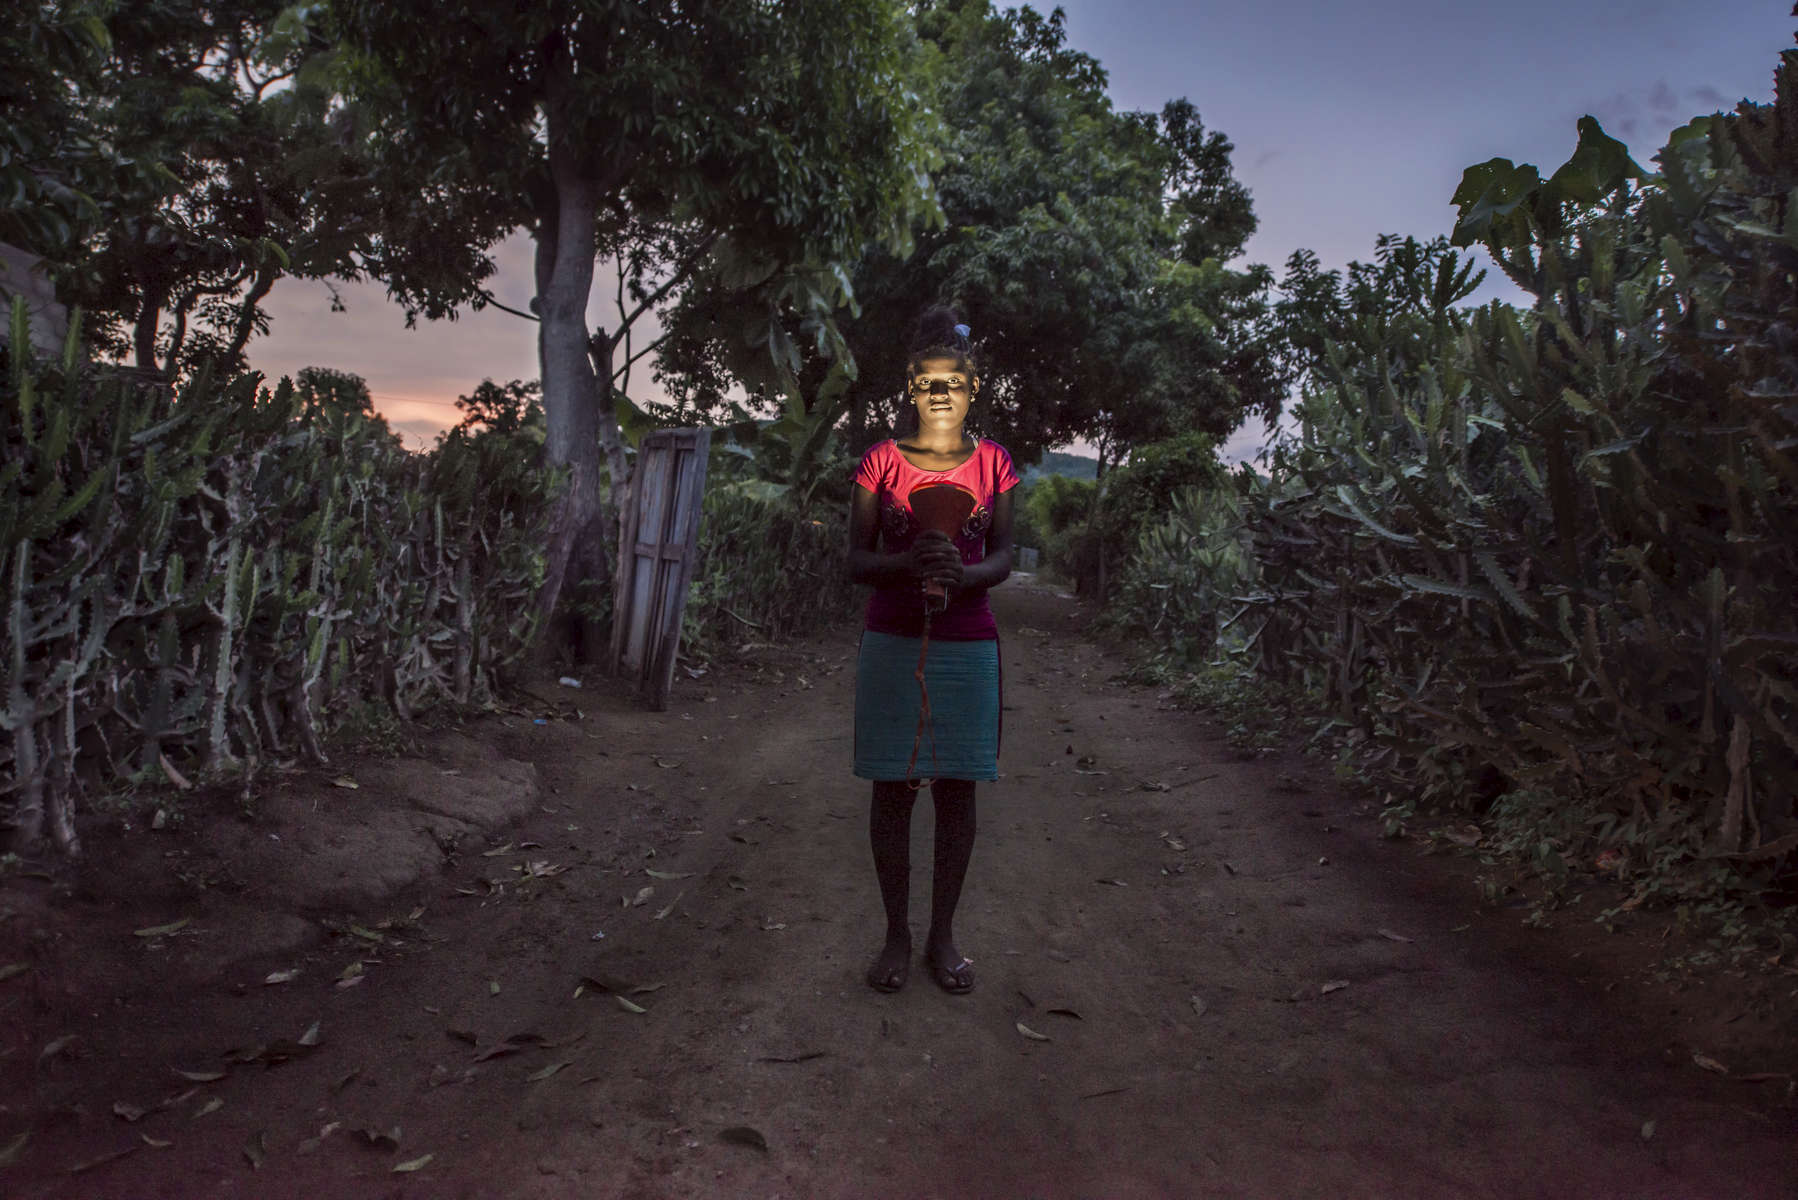 Guivelorna Laguerre holds a solar lantern from Let's Share the Sun Foundation in Fontaine, Haiti